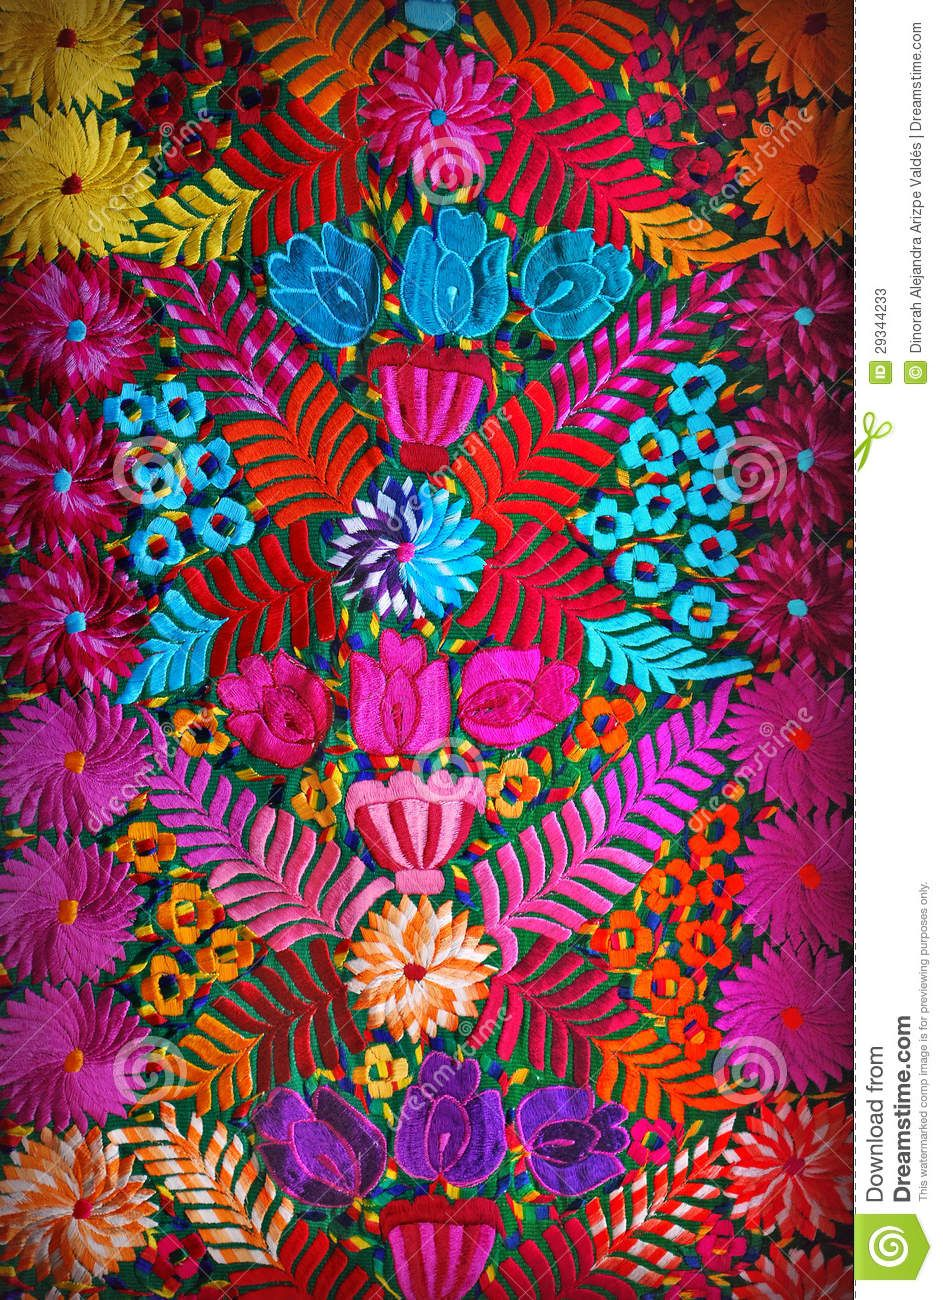 Mexican floral embroidery download from over million